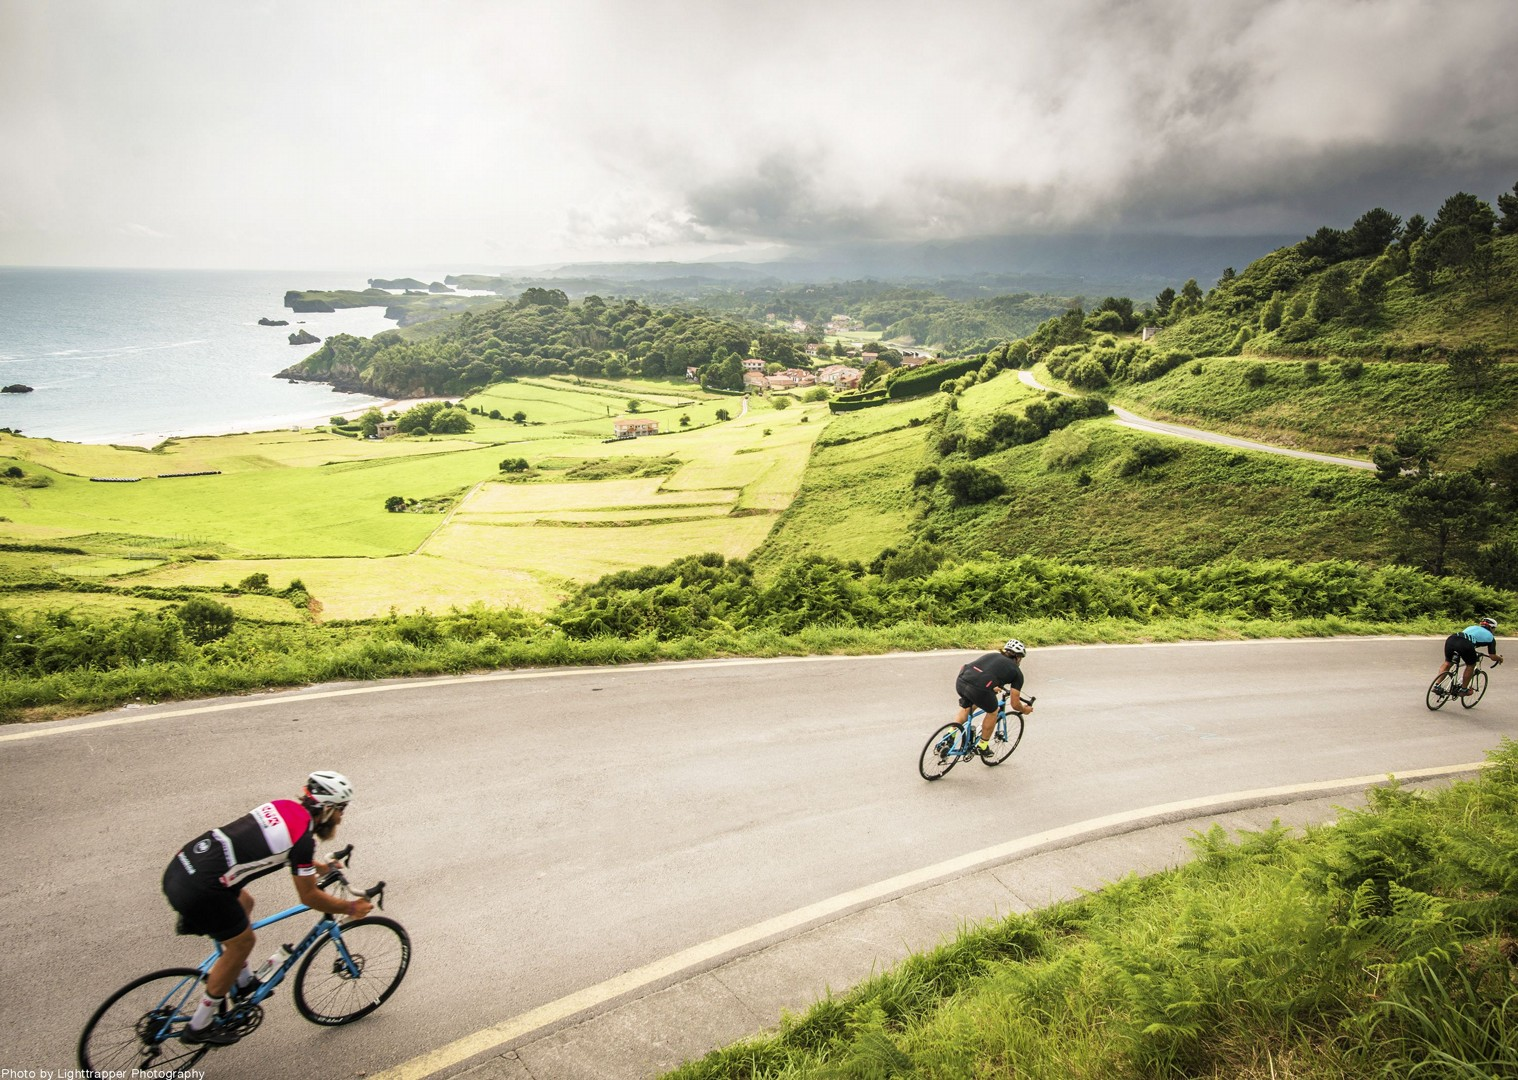 coastal-ride-road-nature-secluded-cycling-spain.jpg - Northern Spain - Road to Santiago - Guided Road Cycling Holiday - Road Cycling